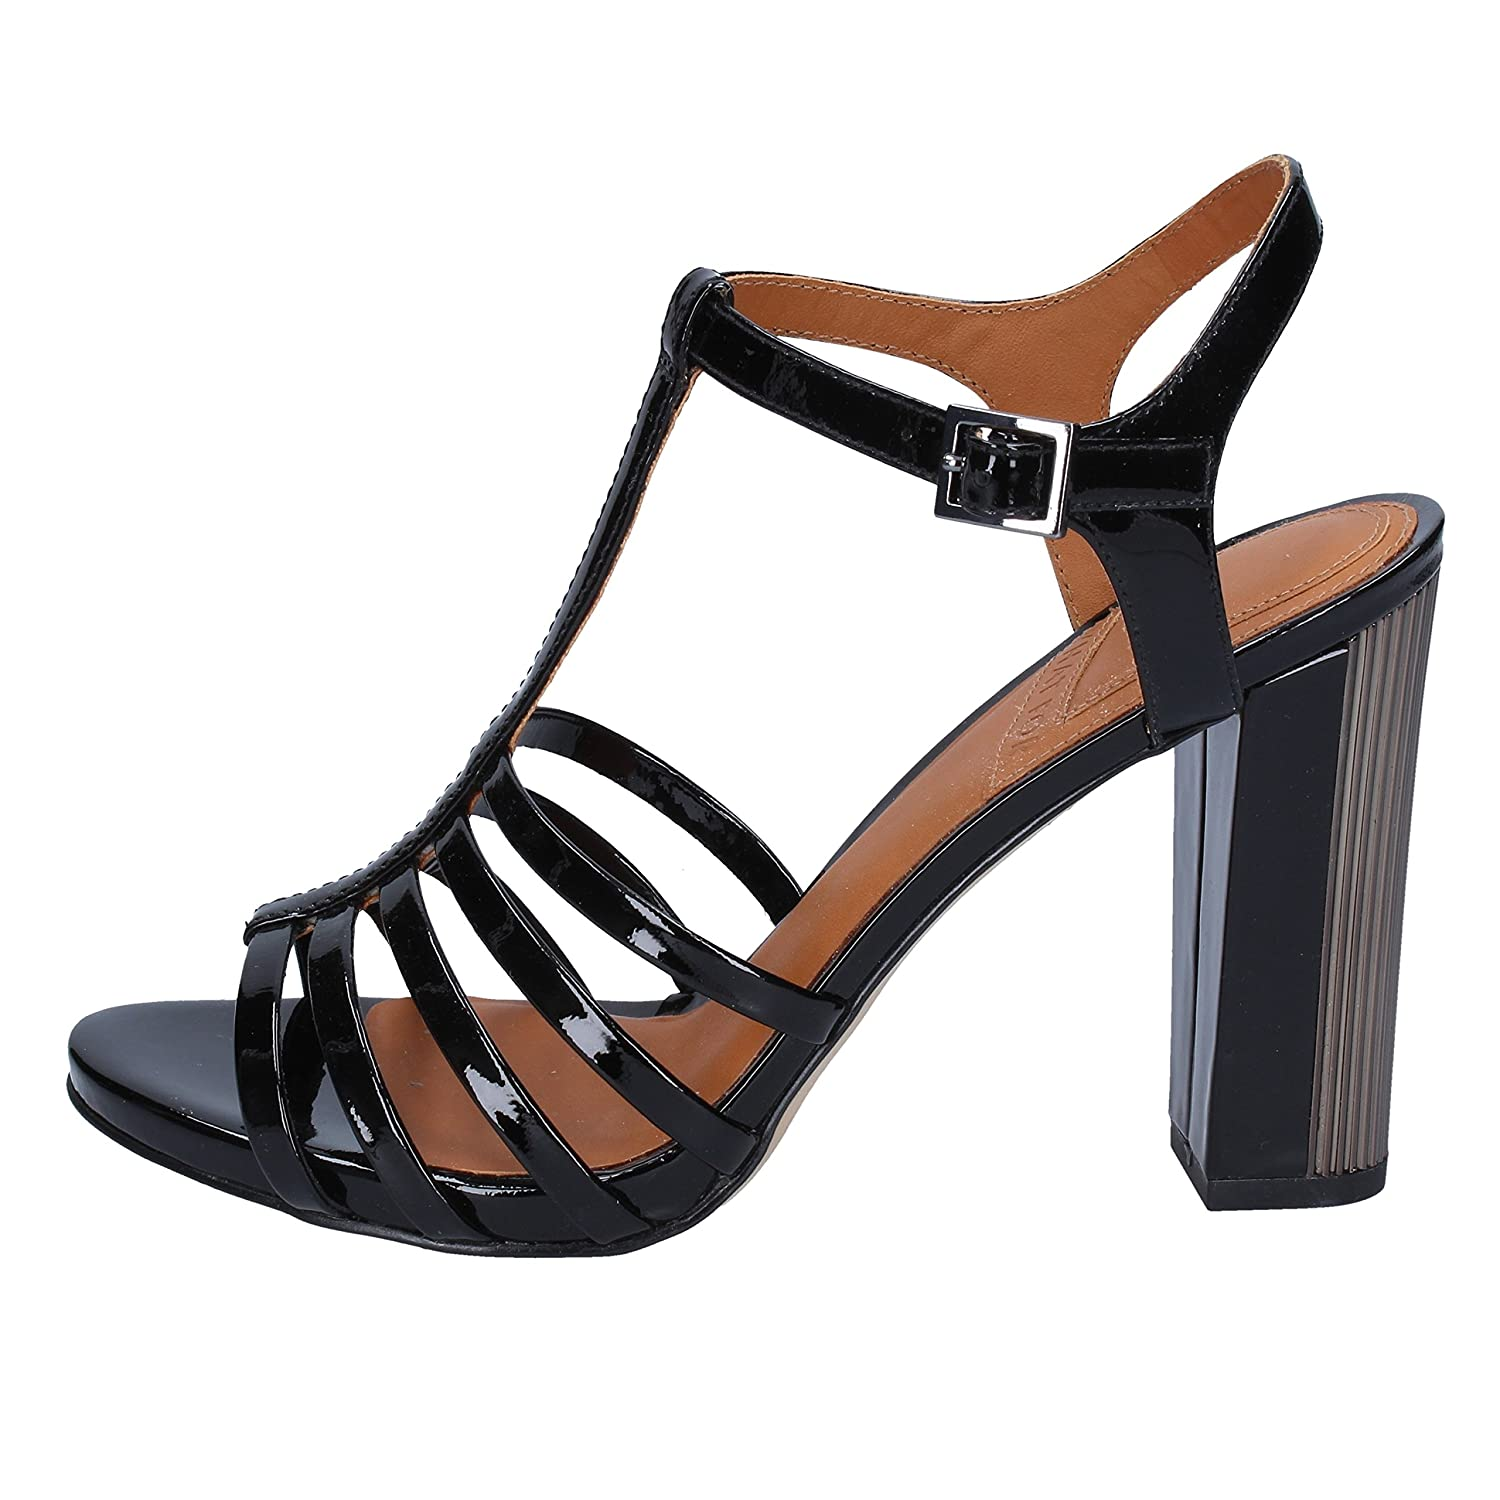 What For Sandalen Damen Lack schwarz